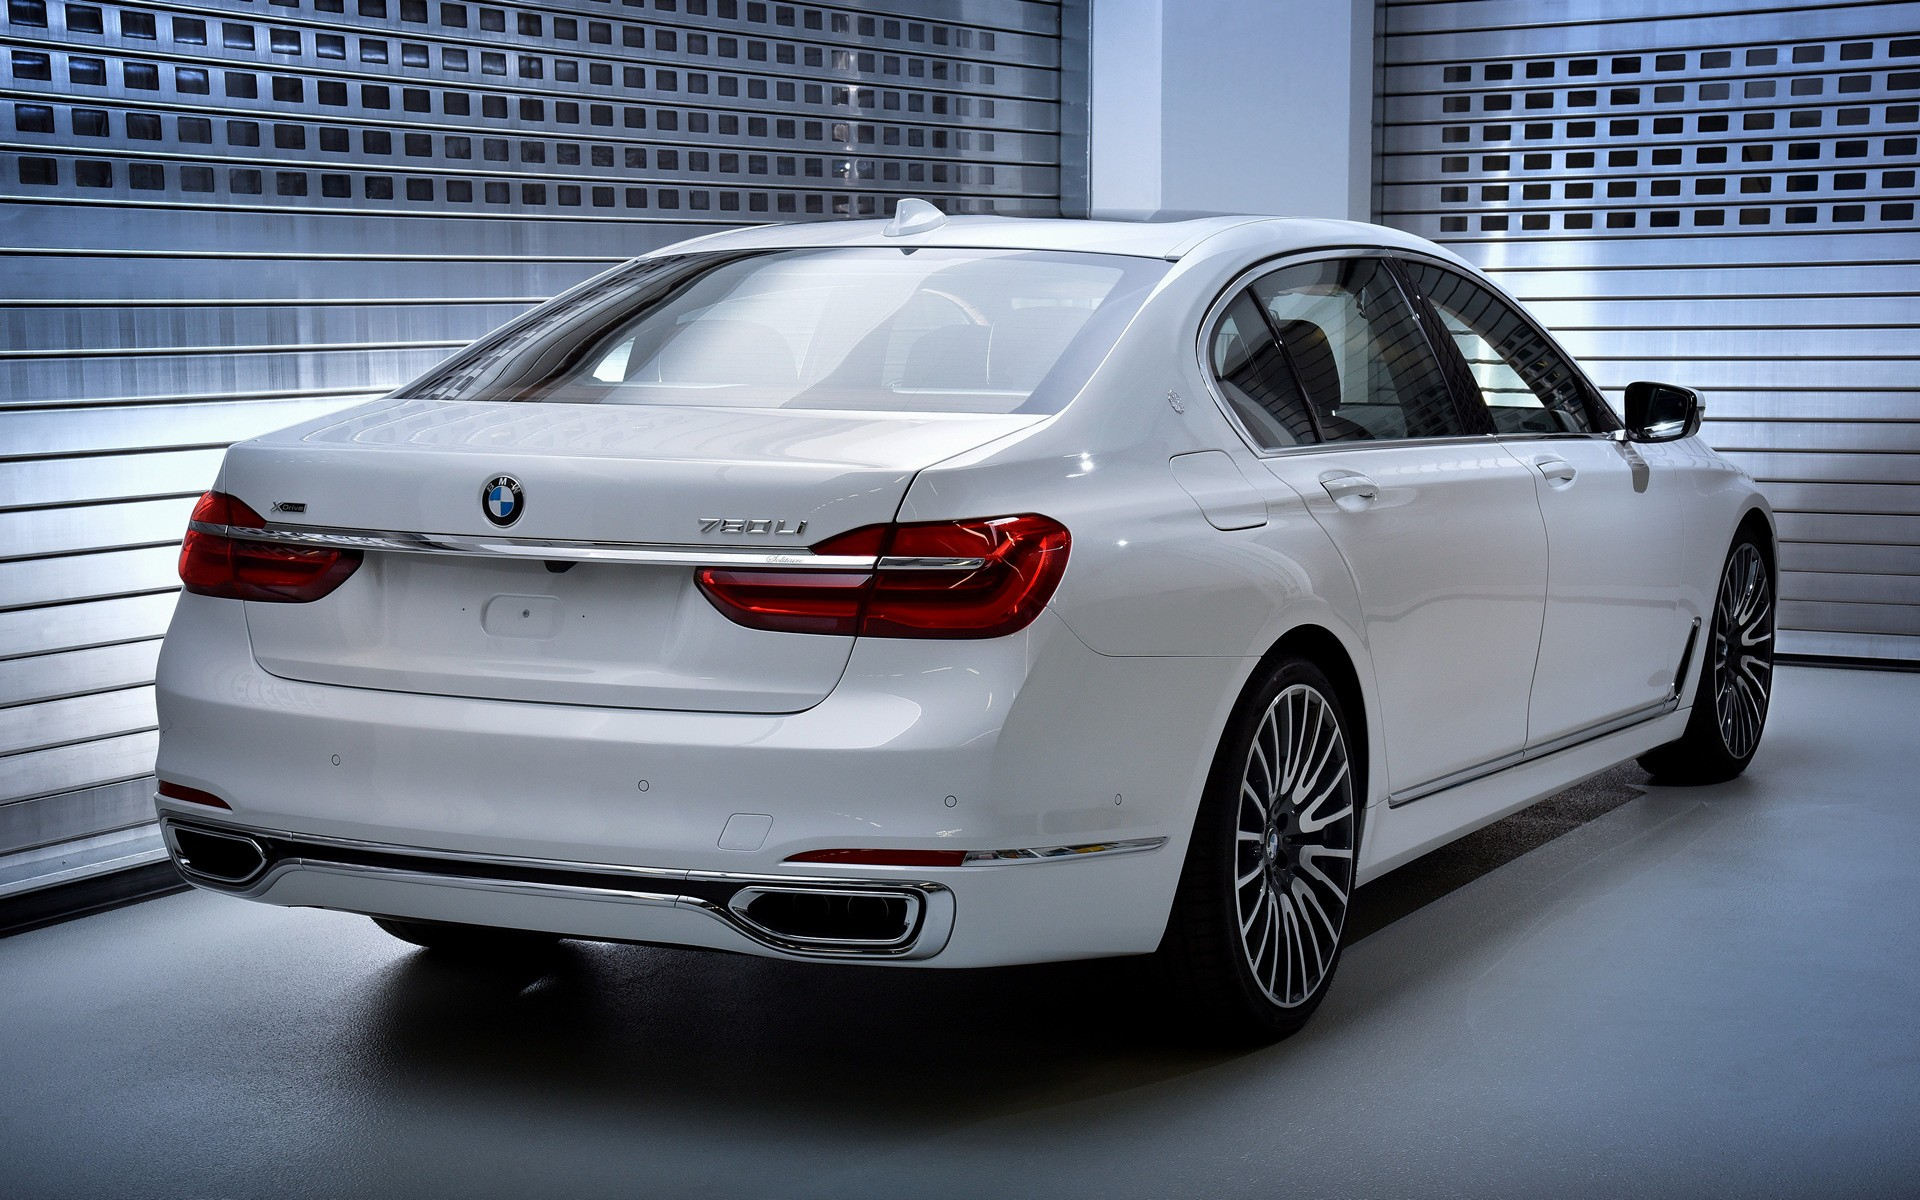 BMW 750Li xDrive Solitaire xDrive